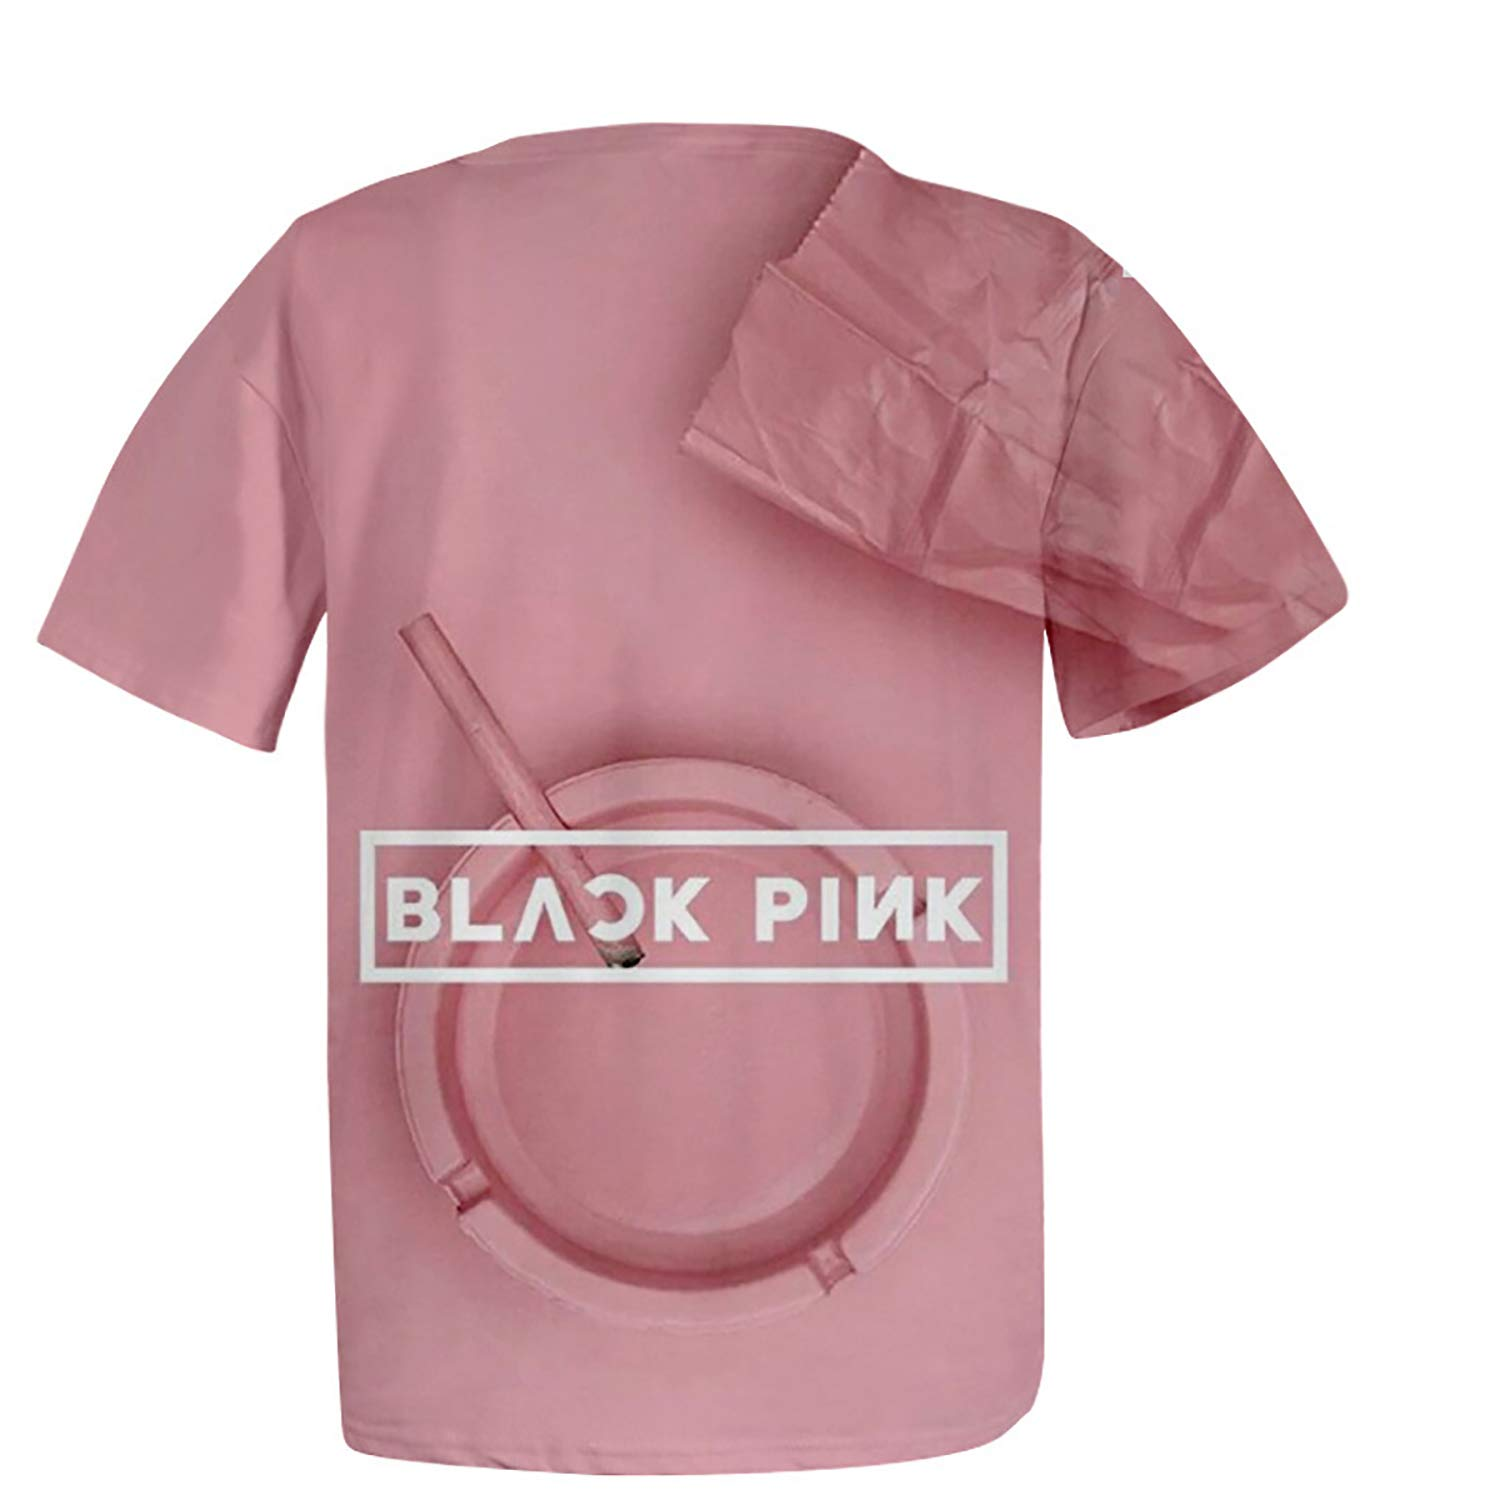 JUNG KOOK Kpop Blackpink 3D Shirt Jisoo Jennie Rose Lisa Jisoo T-Shirt Tee